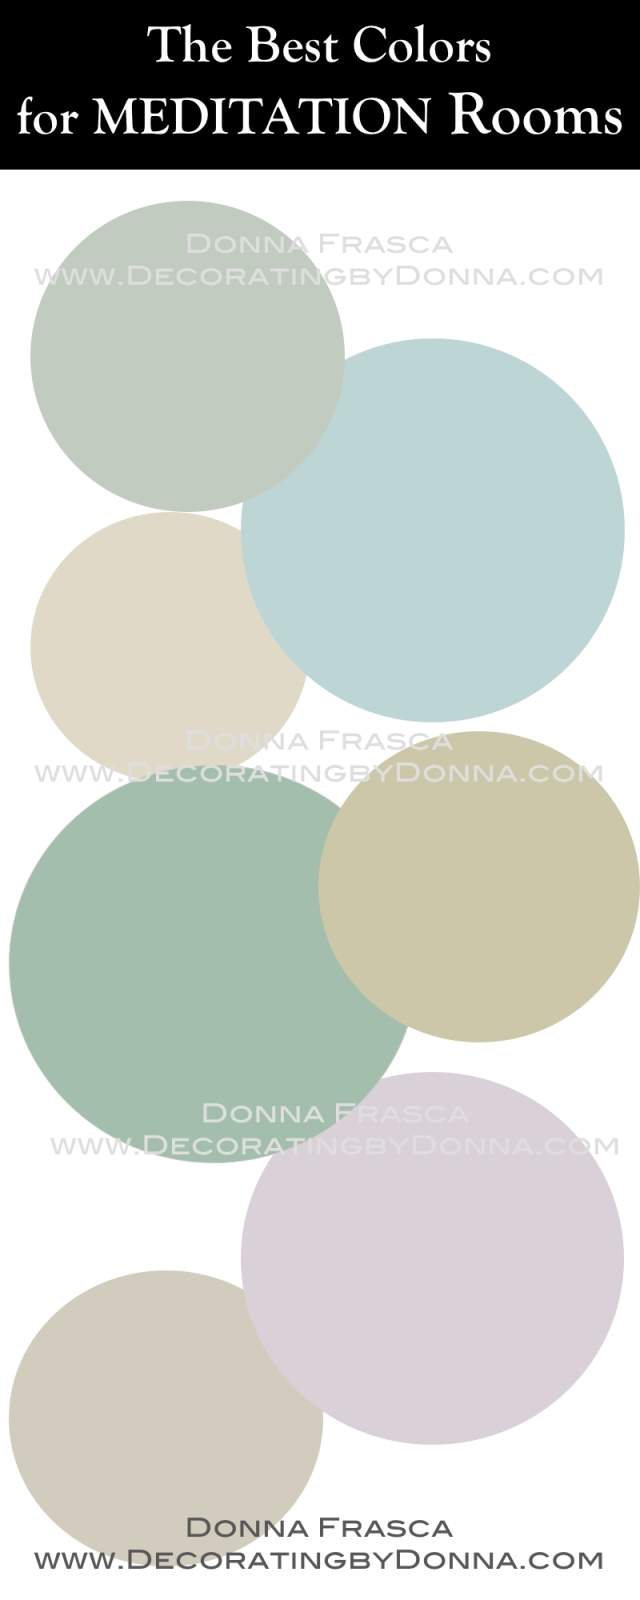 Color Choices for Mediations rooms